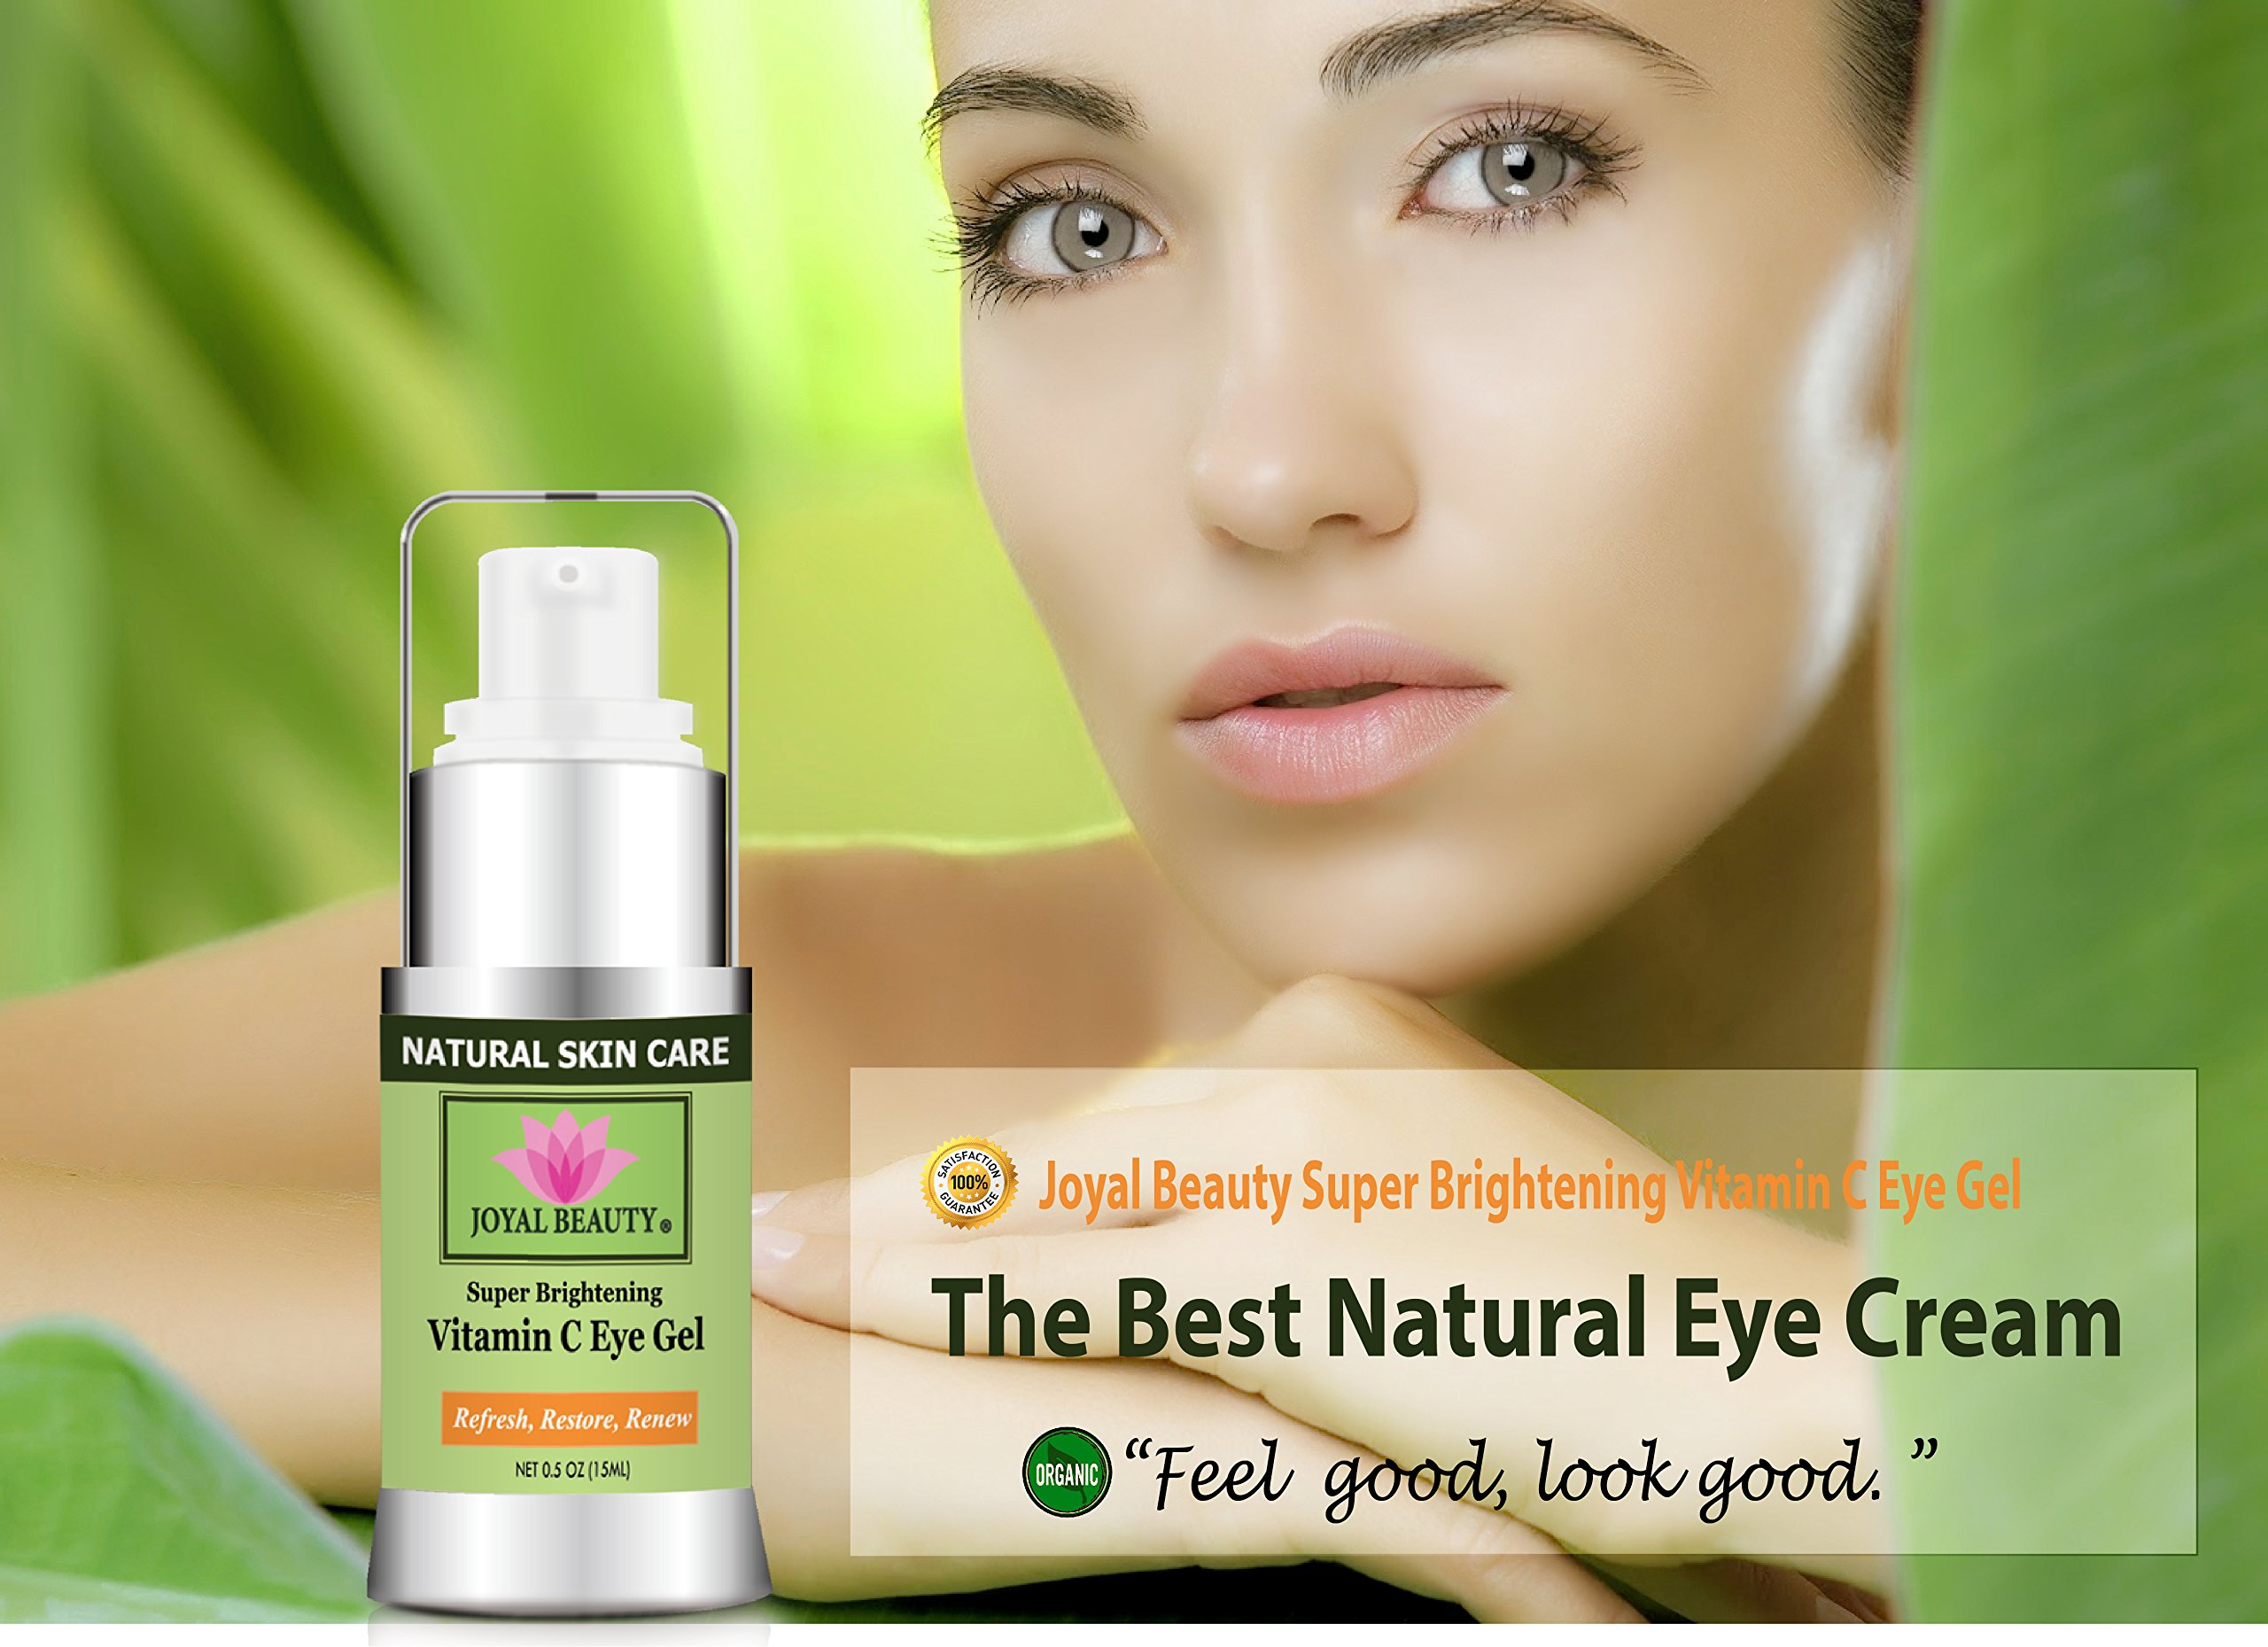 Joyal Beauty Best Organic Eye Cream Gel Moisturizer for Dark Circles and Puffiness Bags Anti Aging Fine Lines and Wrinkles with Hyaluronic Acid Vitamin C Caffeine Peptide Cucumber for Men and Women by Joyal Beauty (Image #3)